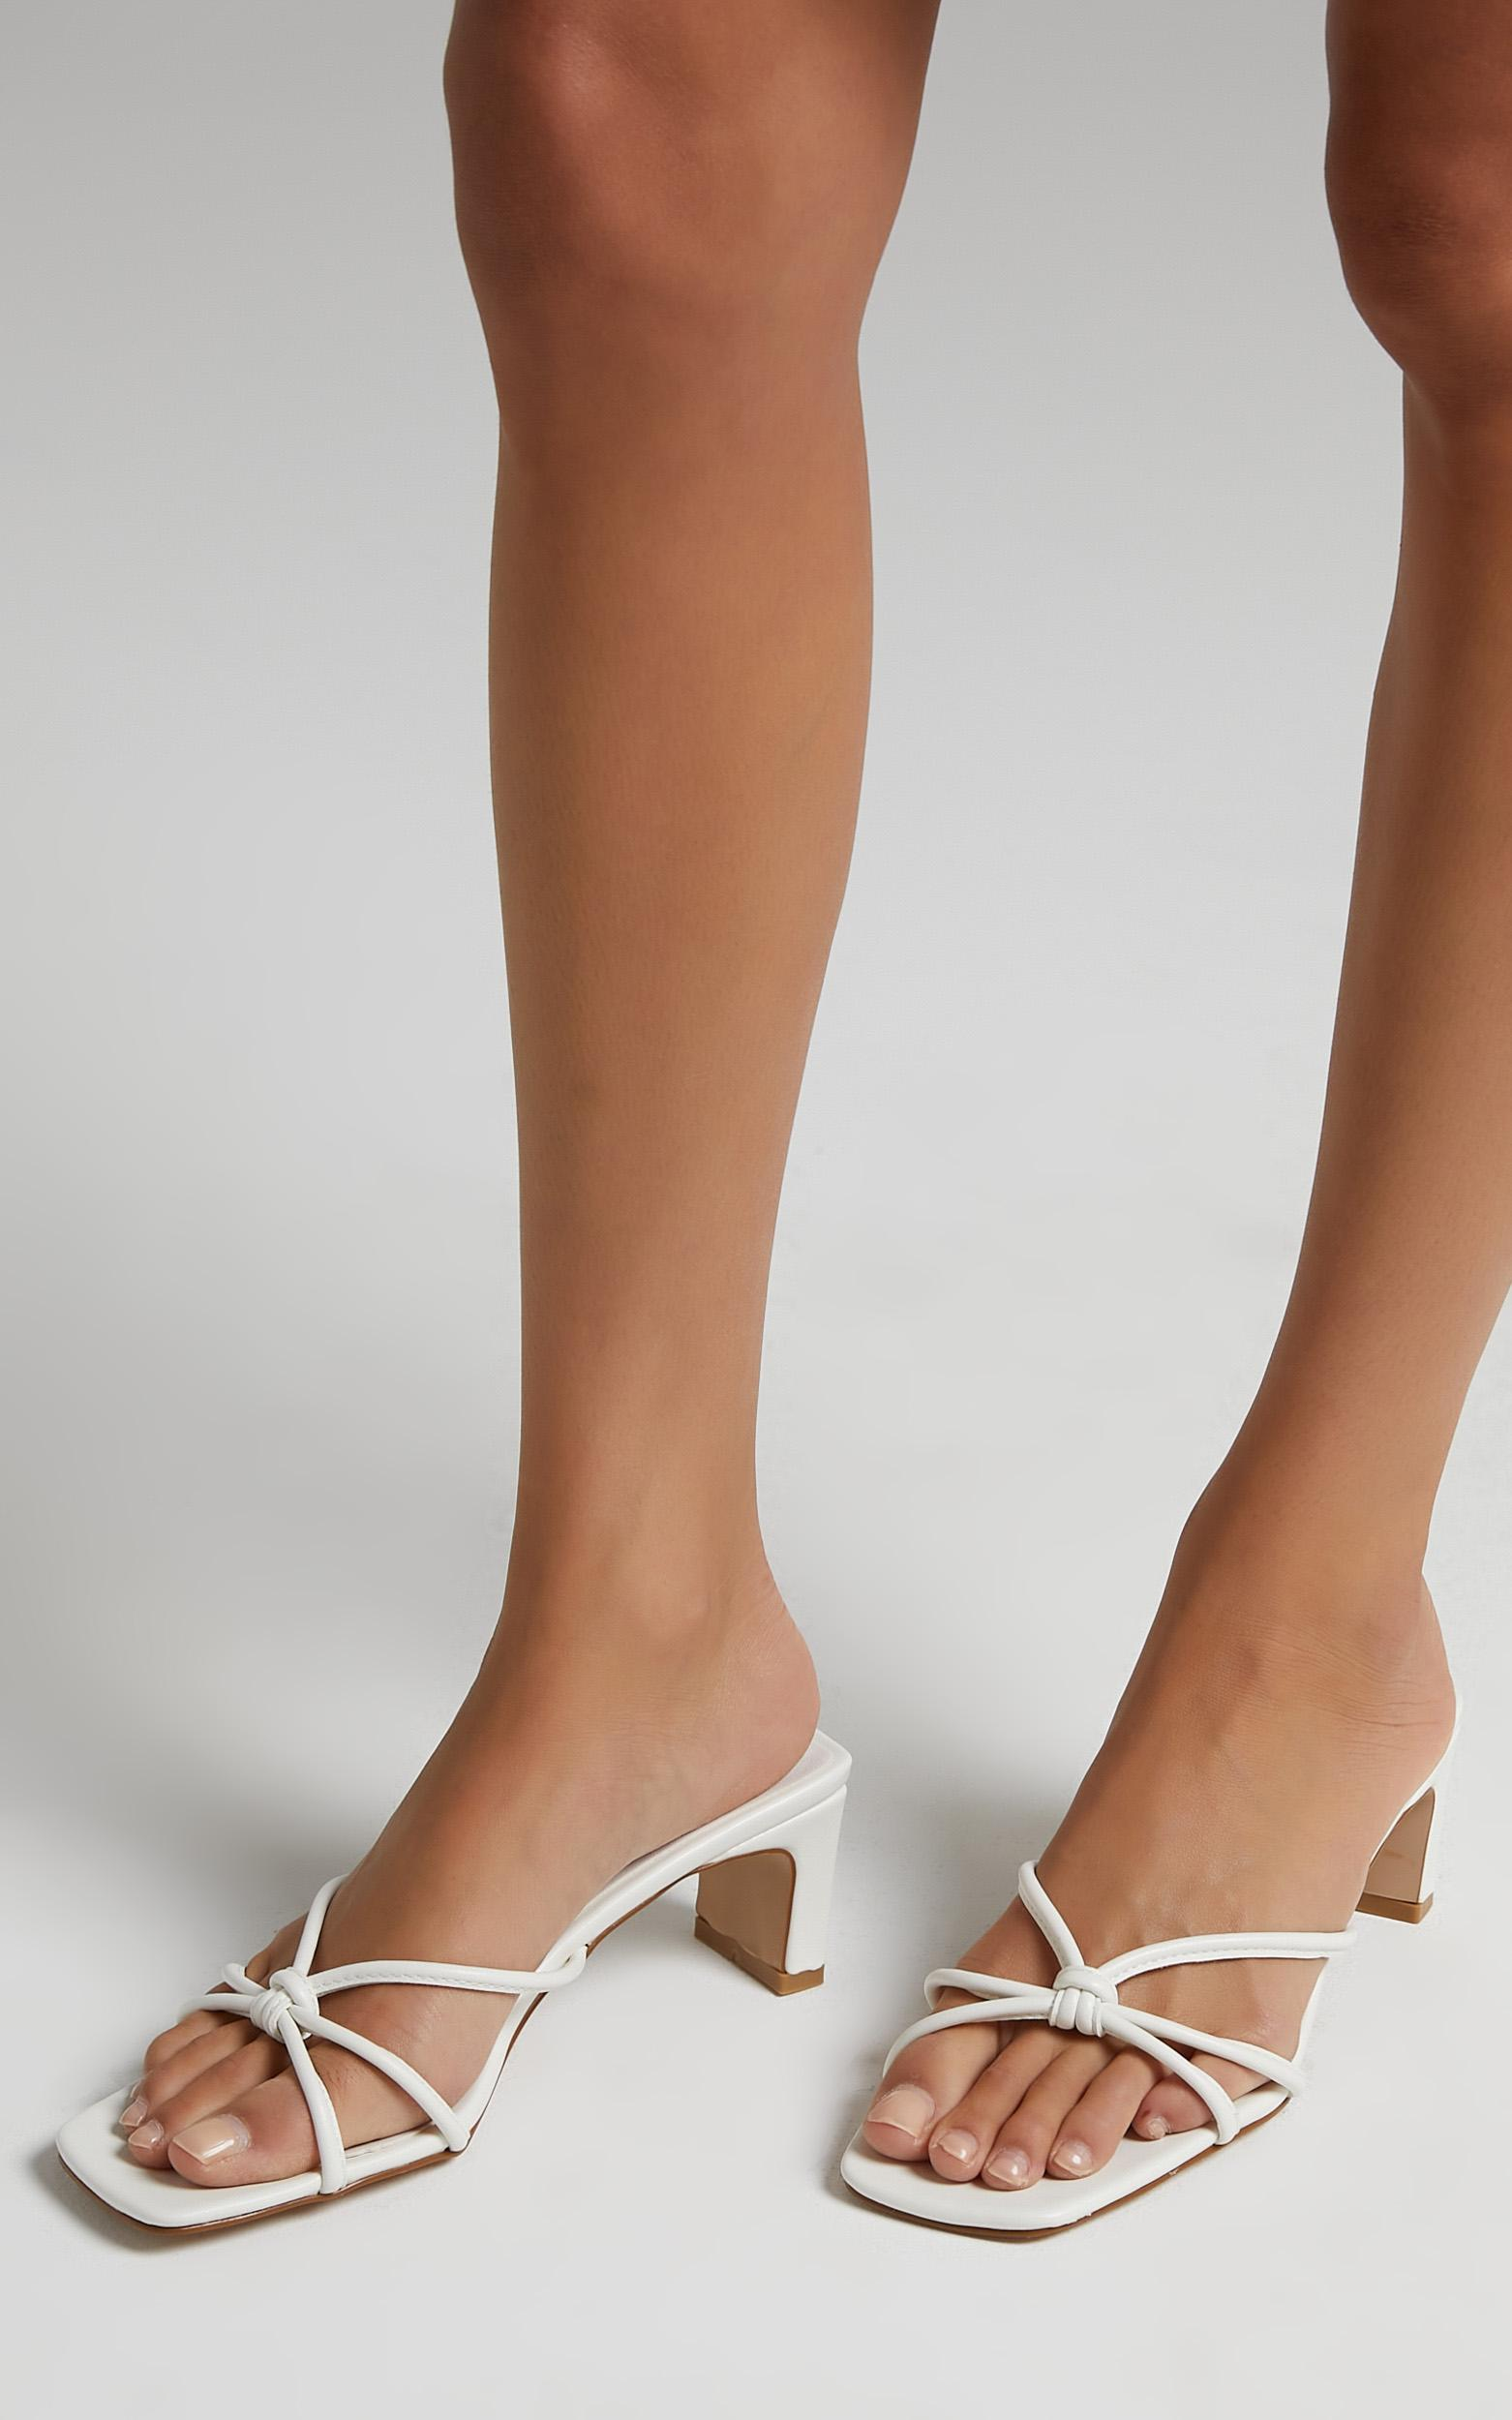 Billini - Grace Heels in White - 5, White, hi-res image number null